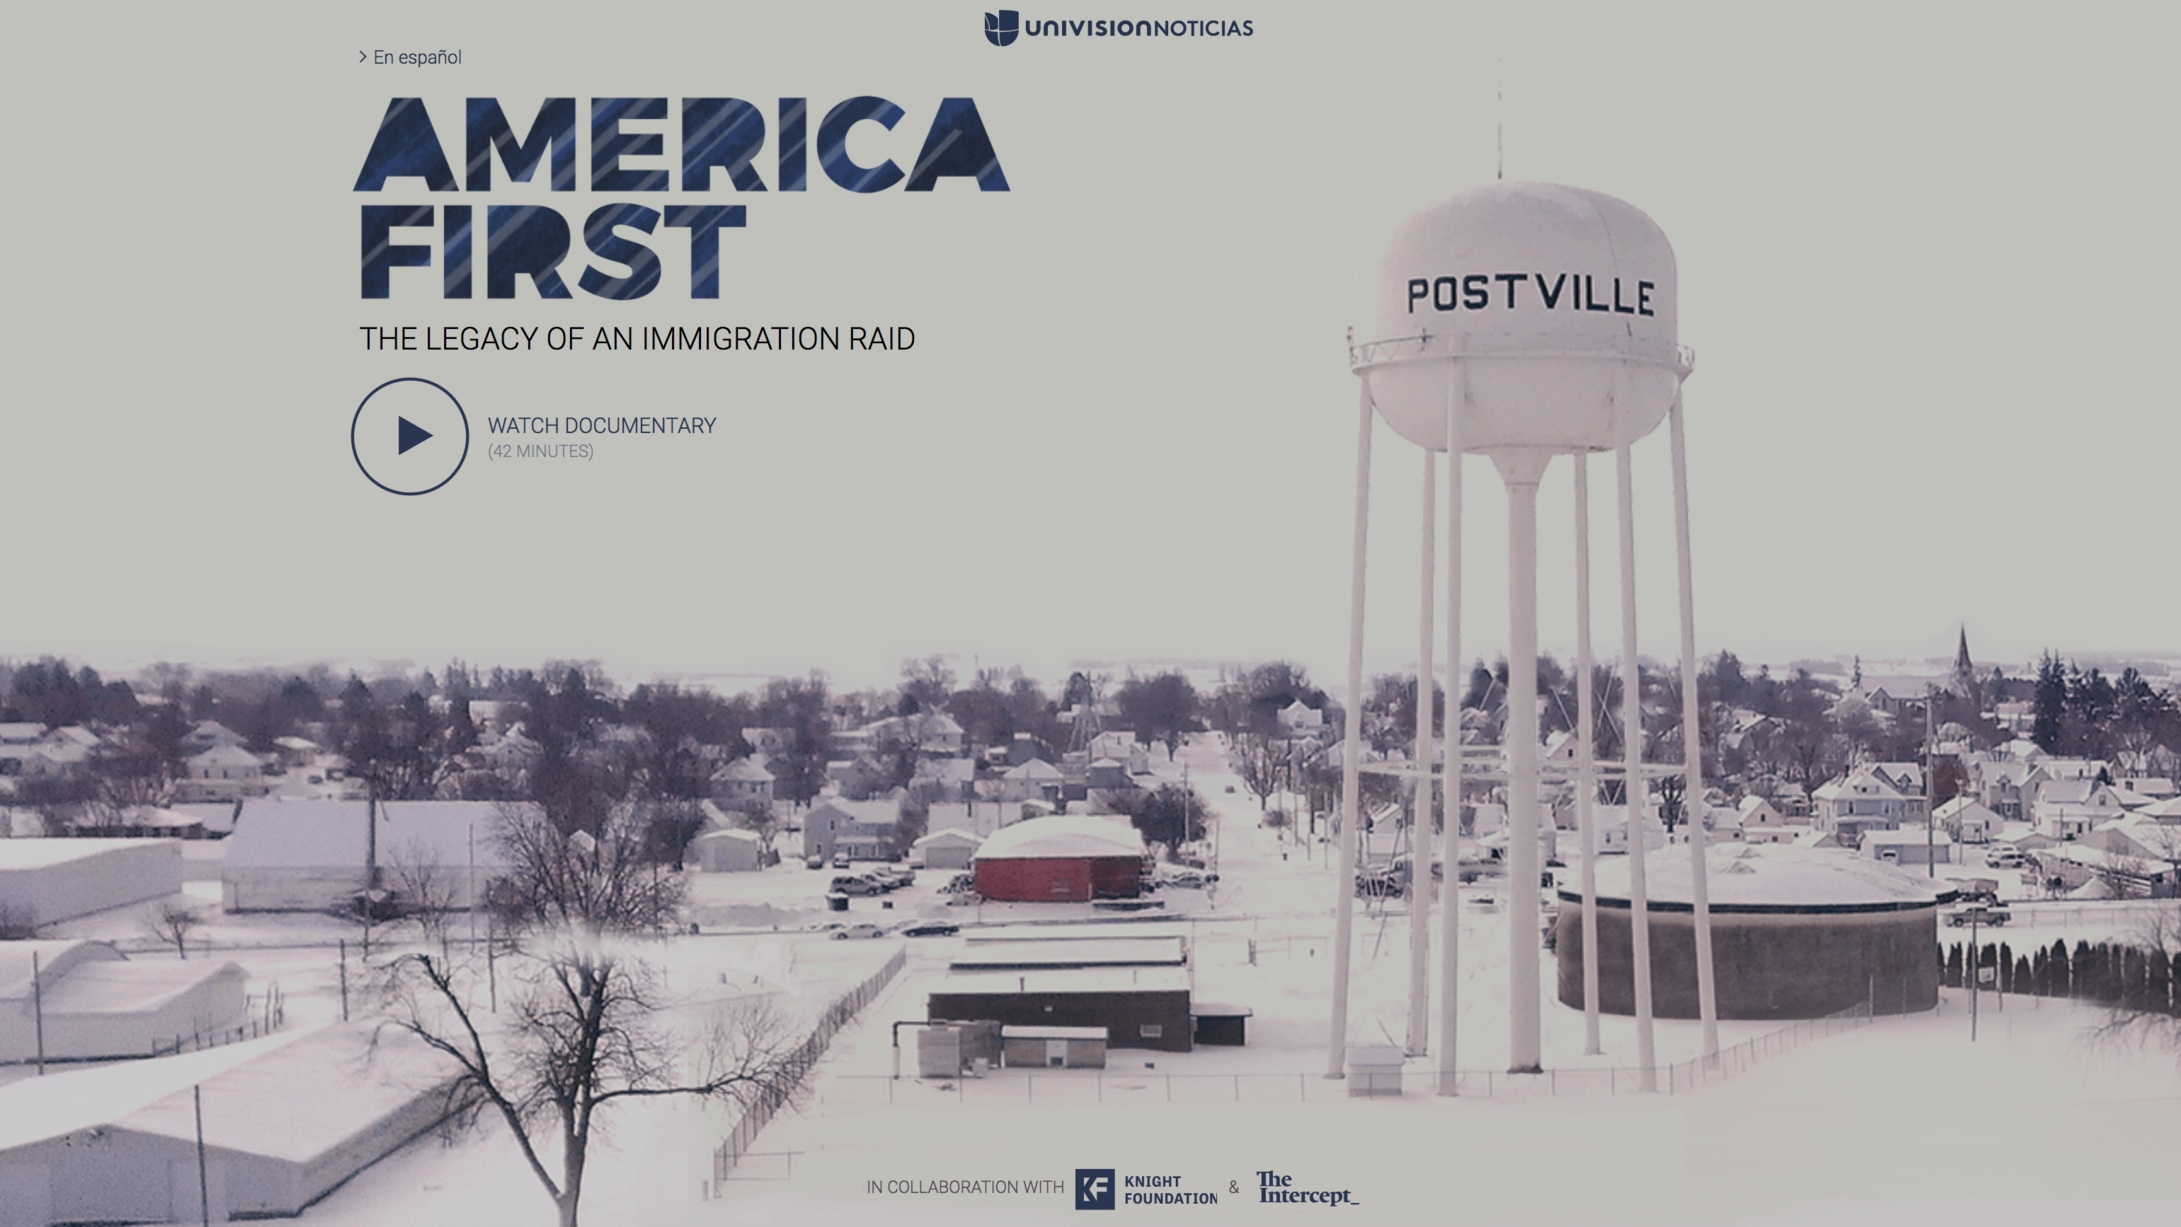 This documentary examines the repercussions of one of the largest workplace immigration raids in the U.S., and the long term effects on Postville, Iowa, where the raid took place.